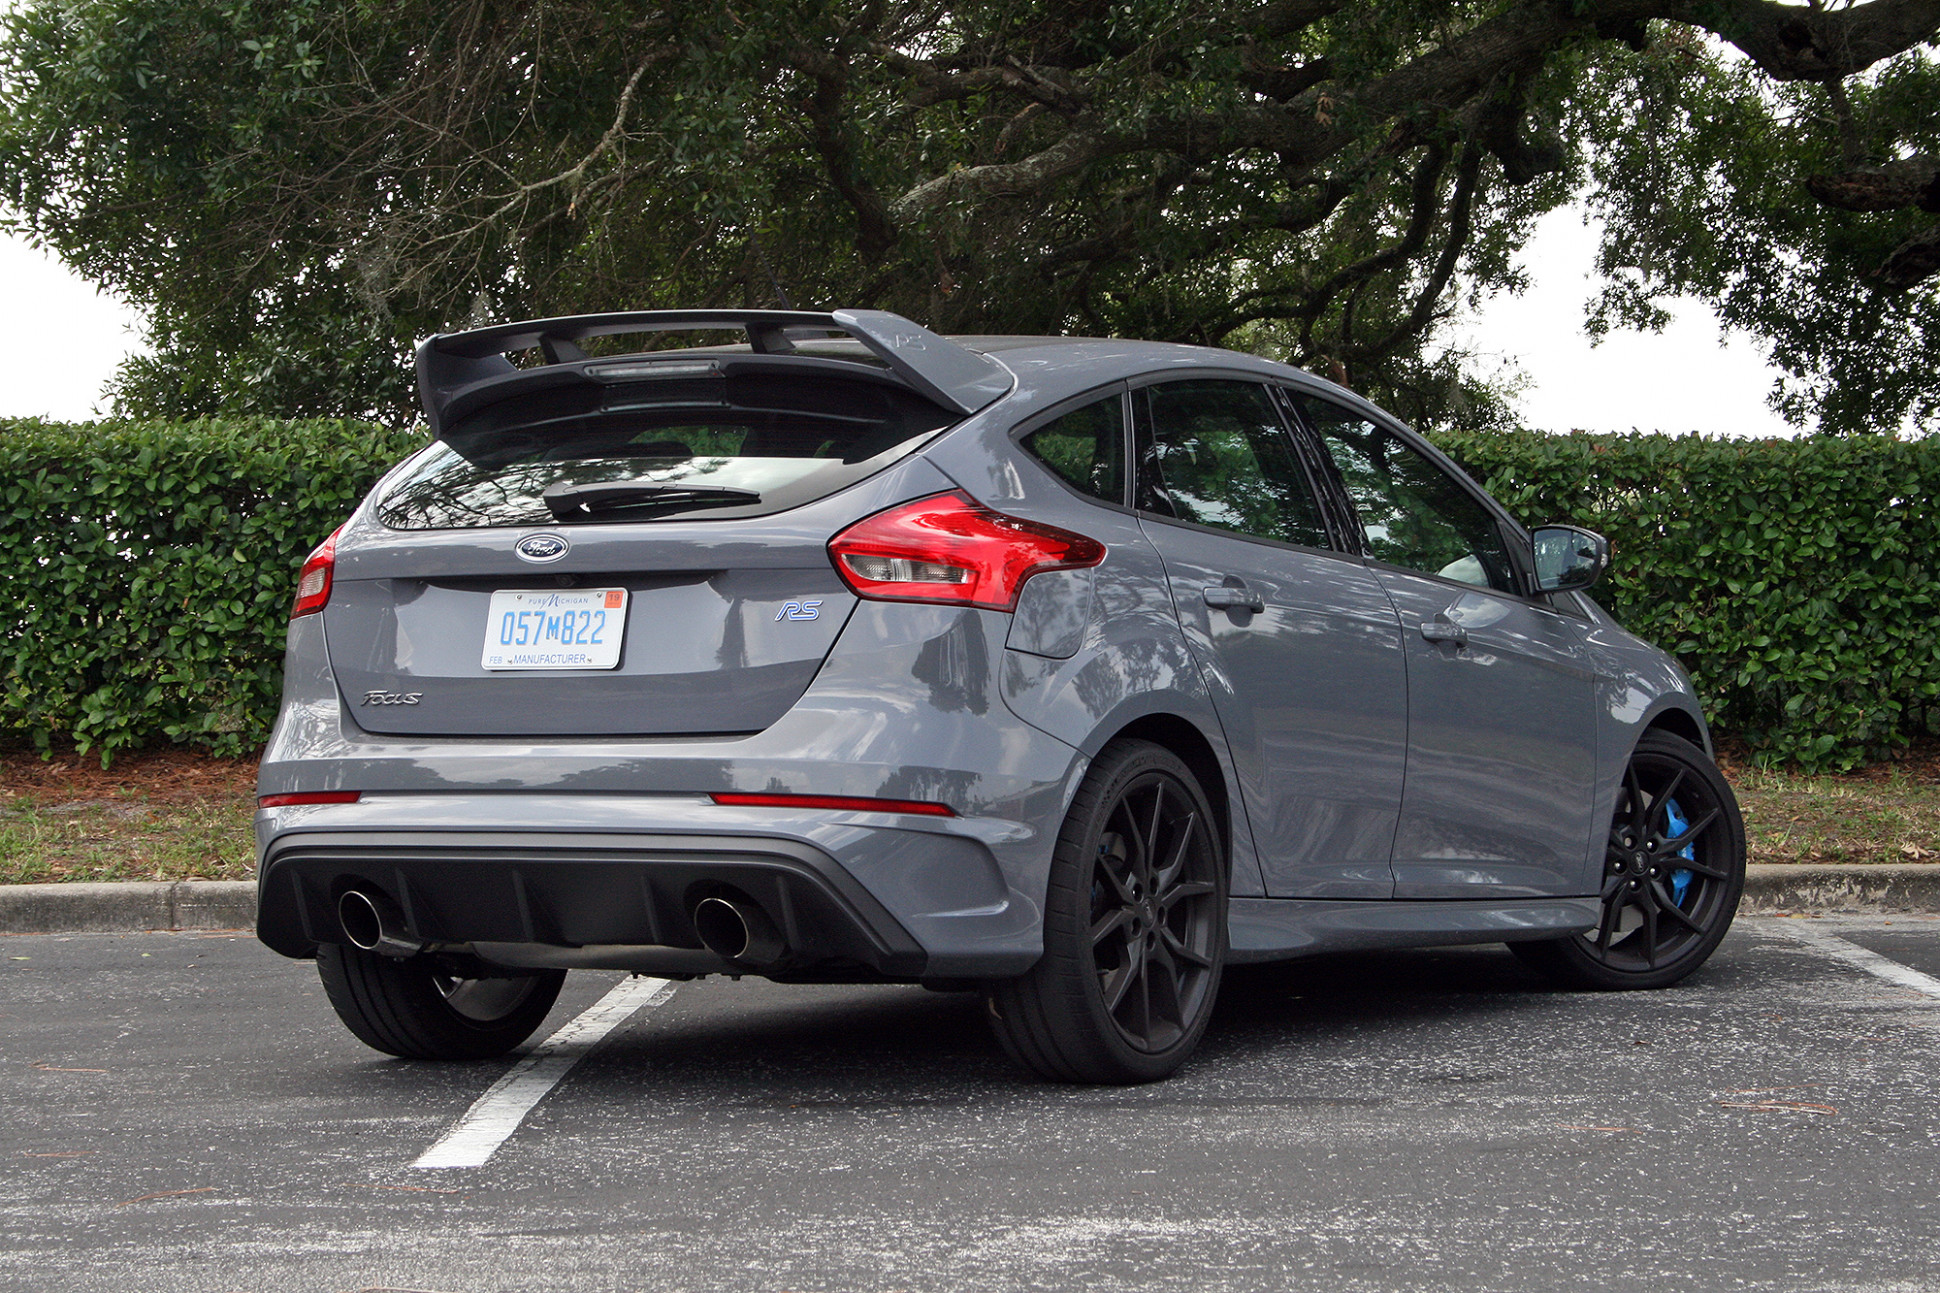 Specs 2022 Ford Focus Rs St